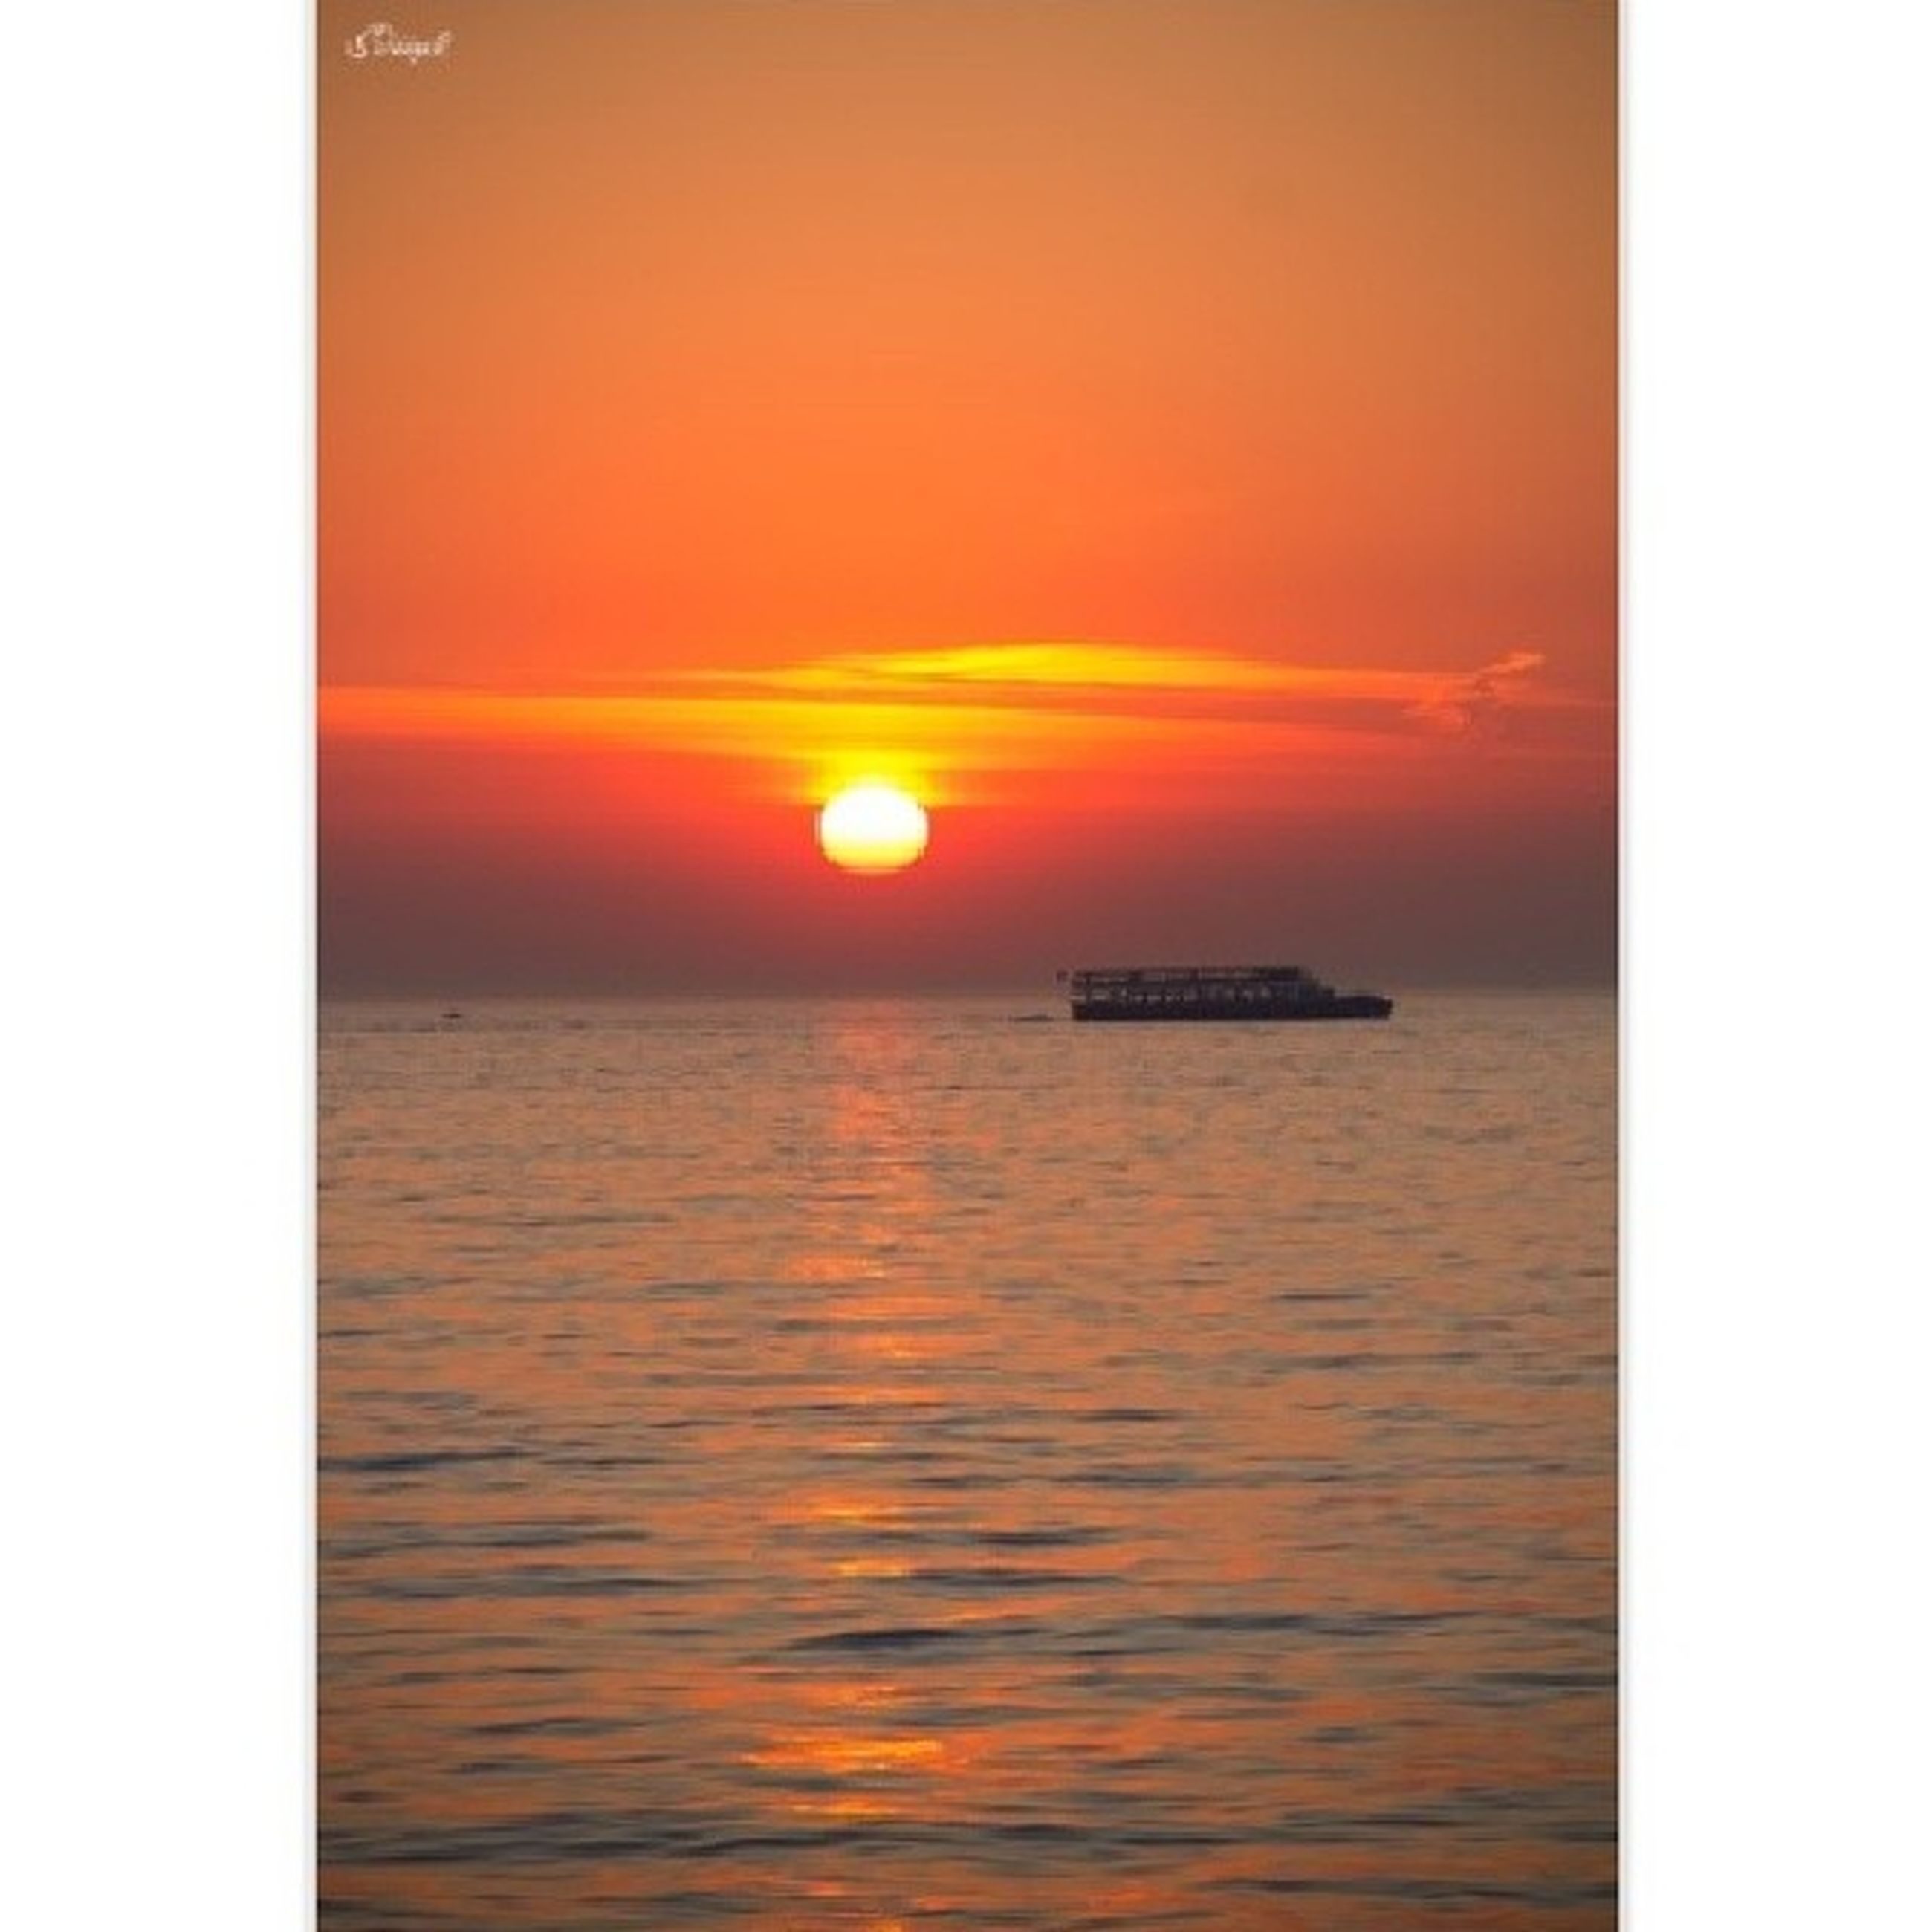 sunset, sea, water, horizon over water, sun, scenics, orange color, tranquil scene, waterfront, beauty in nature, tranquility, nautical vessel, sky, transfer print, idyllic, boat, nature, transportation, auto post production filter, rippled